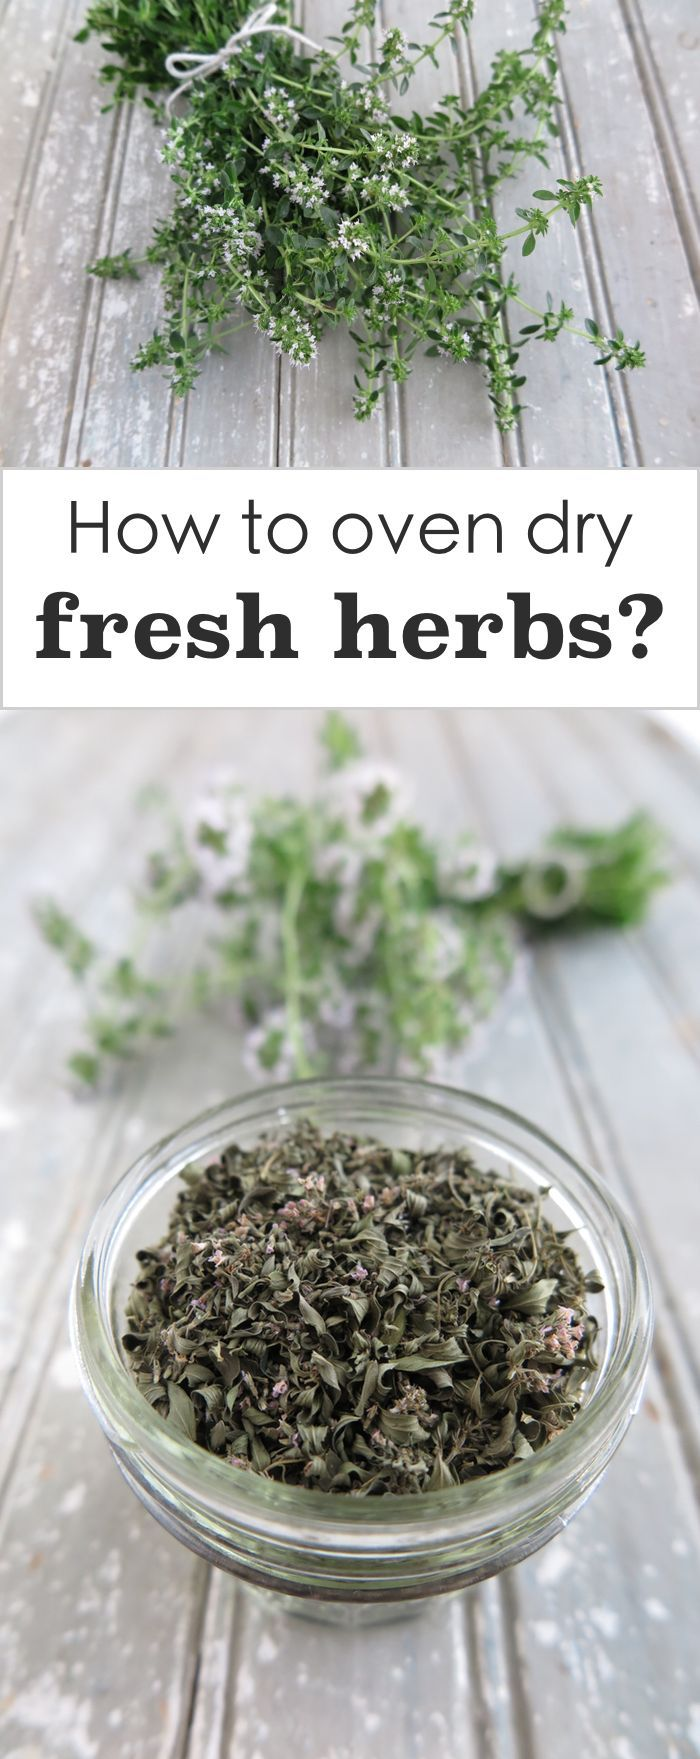 | How to Oven Dry Fresh Herbs | http://asquirrelinthekitchen.com